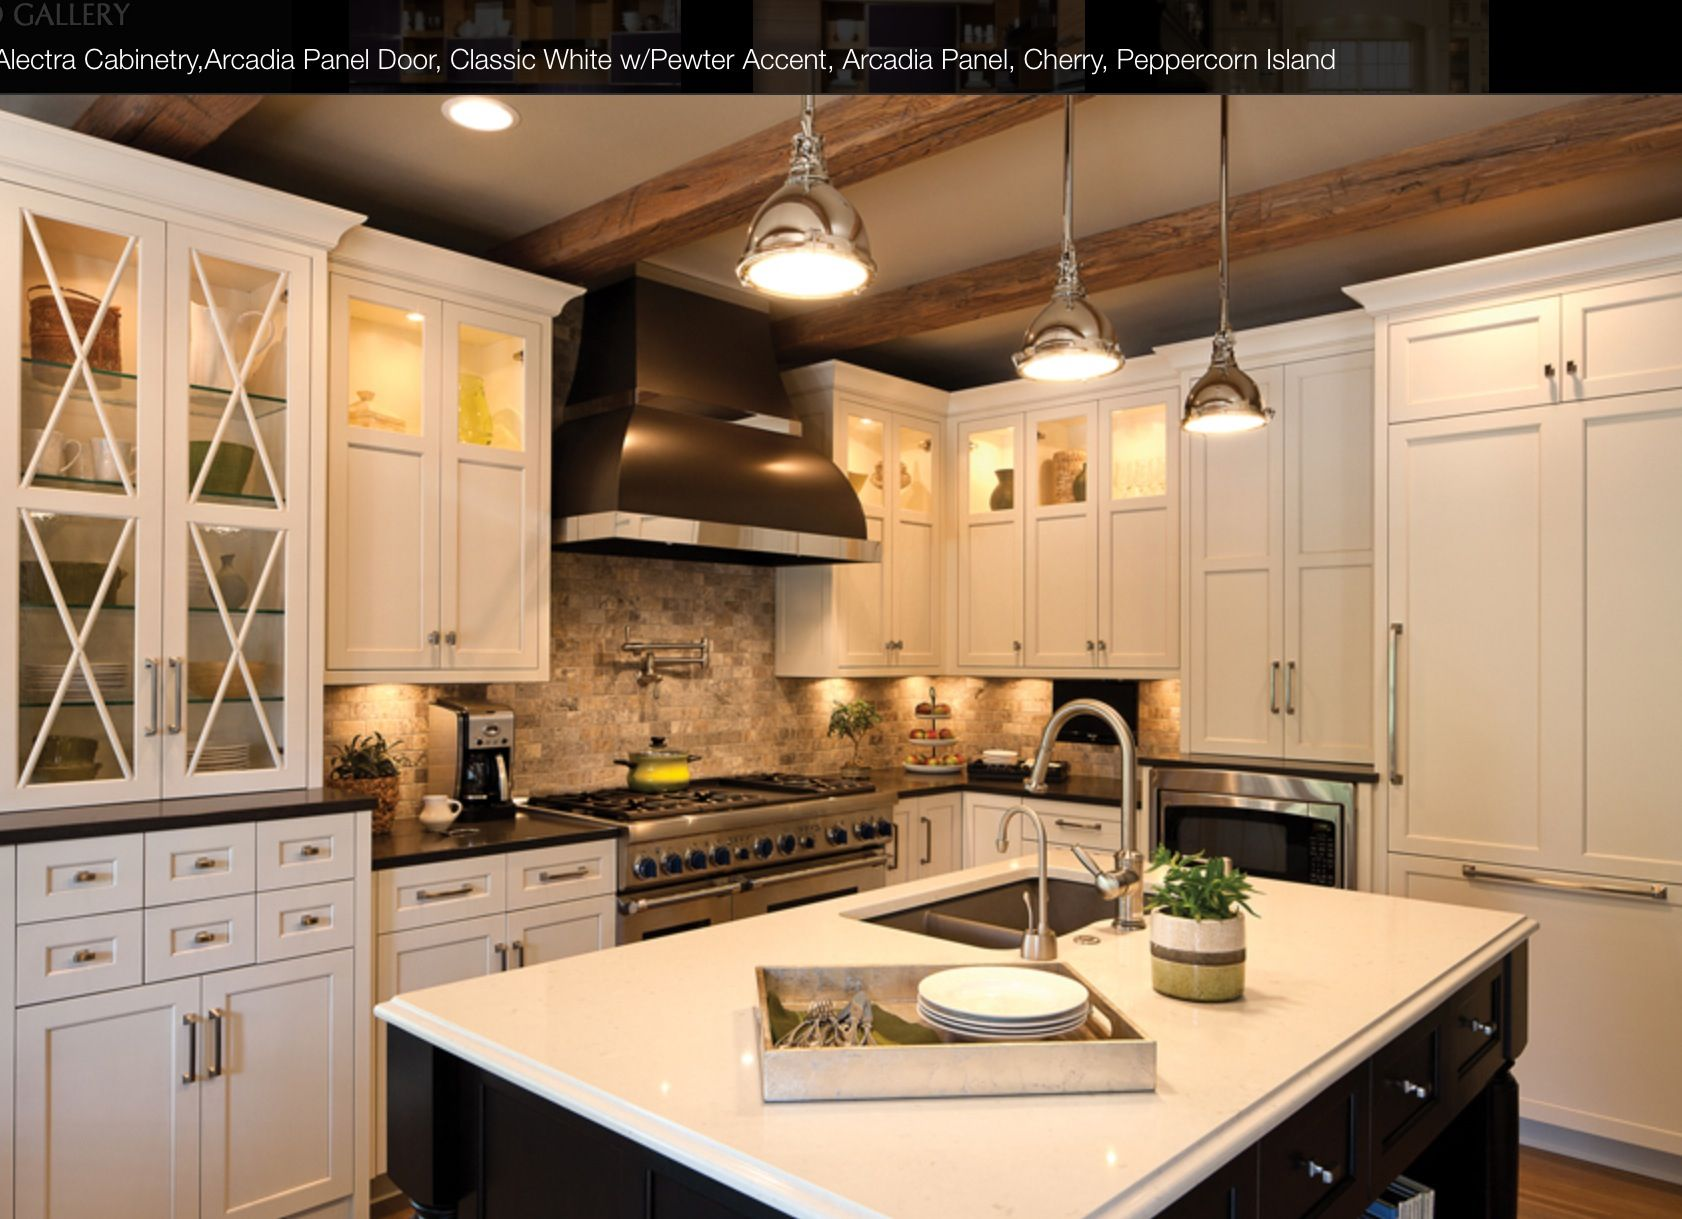 Kitchens White shaker cabinets with Black center